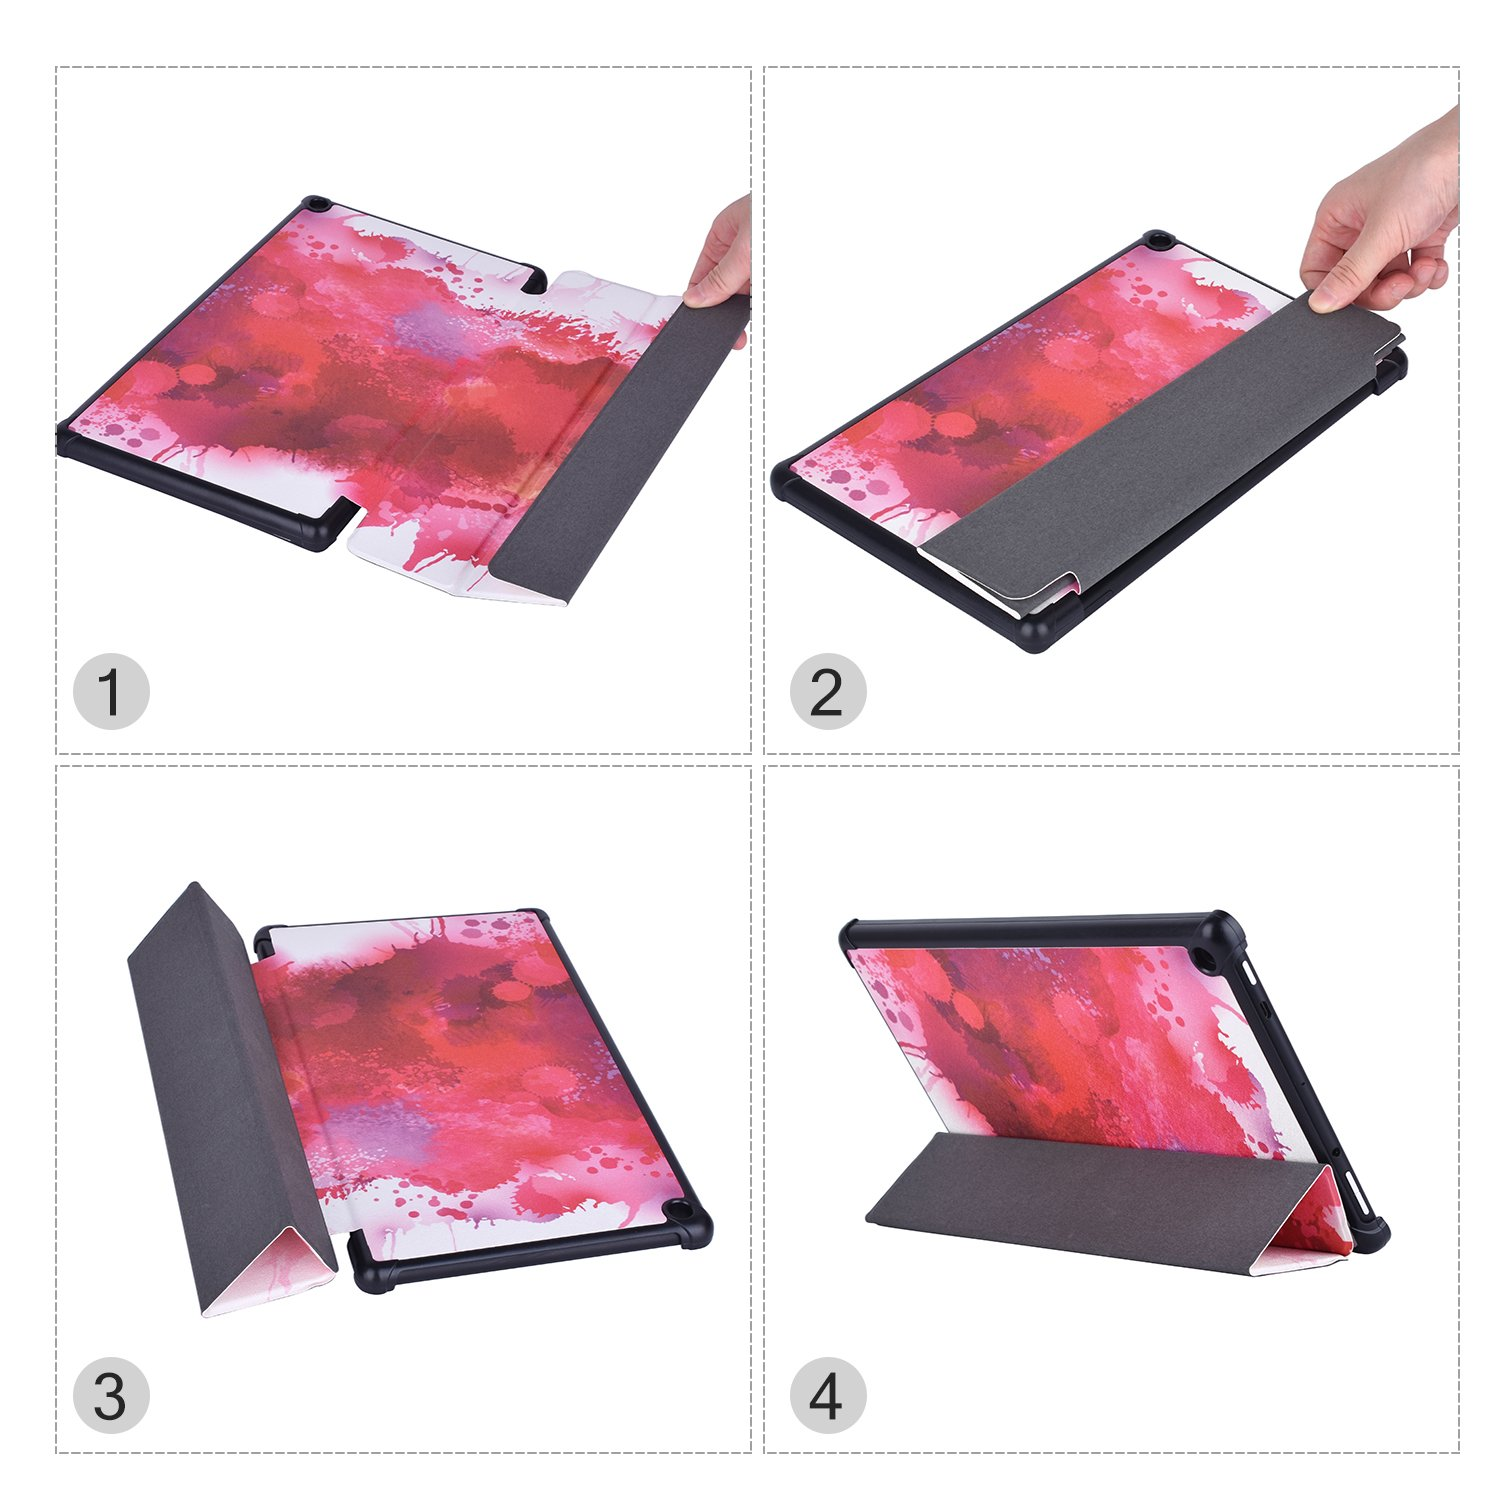 Dopup Fire 10 Case Ultra Lightweight Folding Stand Cover All New Slim-Fit PU Leather with Auto Wake/Sleep Fire 10 Tablet Case(Splatter Red)